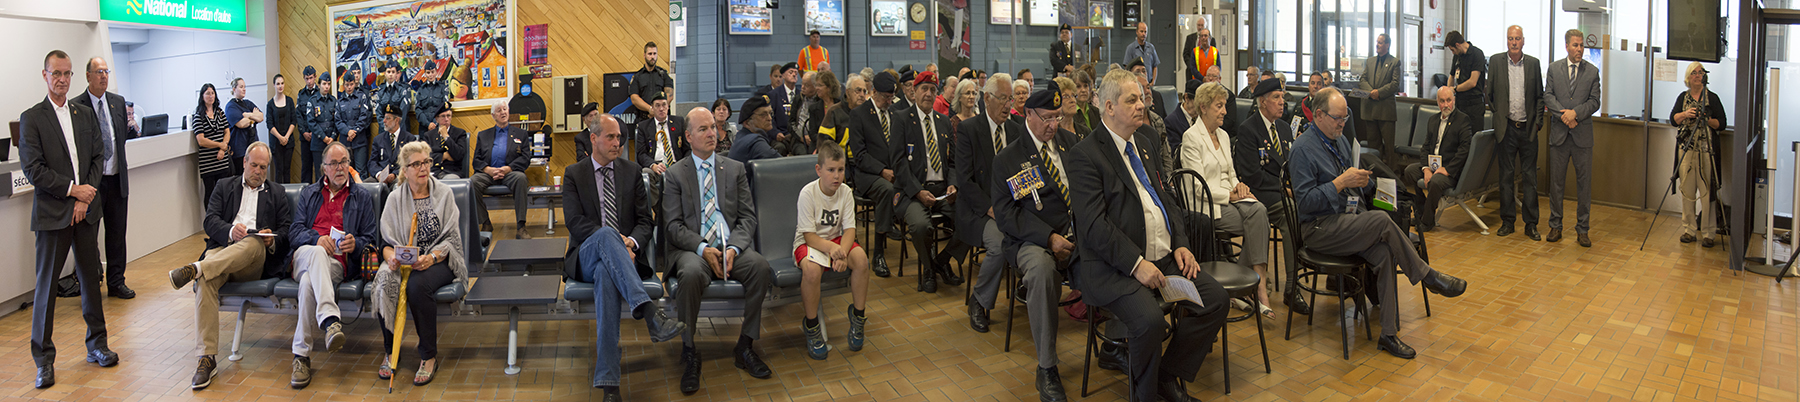 Canadian Armed Forces veterans and members, Air cadets, local dignitaries, family members, and guests gather at Mont-Joli, Québec, Regional Airport for the August 22, 2016, ceremony commemorating No. 9 Bombing and Gunnery School and the British Commonwealth Air Training Plan. PHOTO: Jean-Pierre Bonin